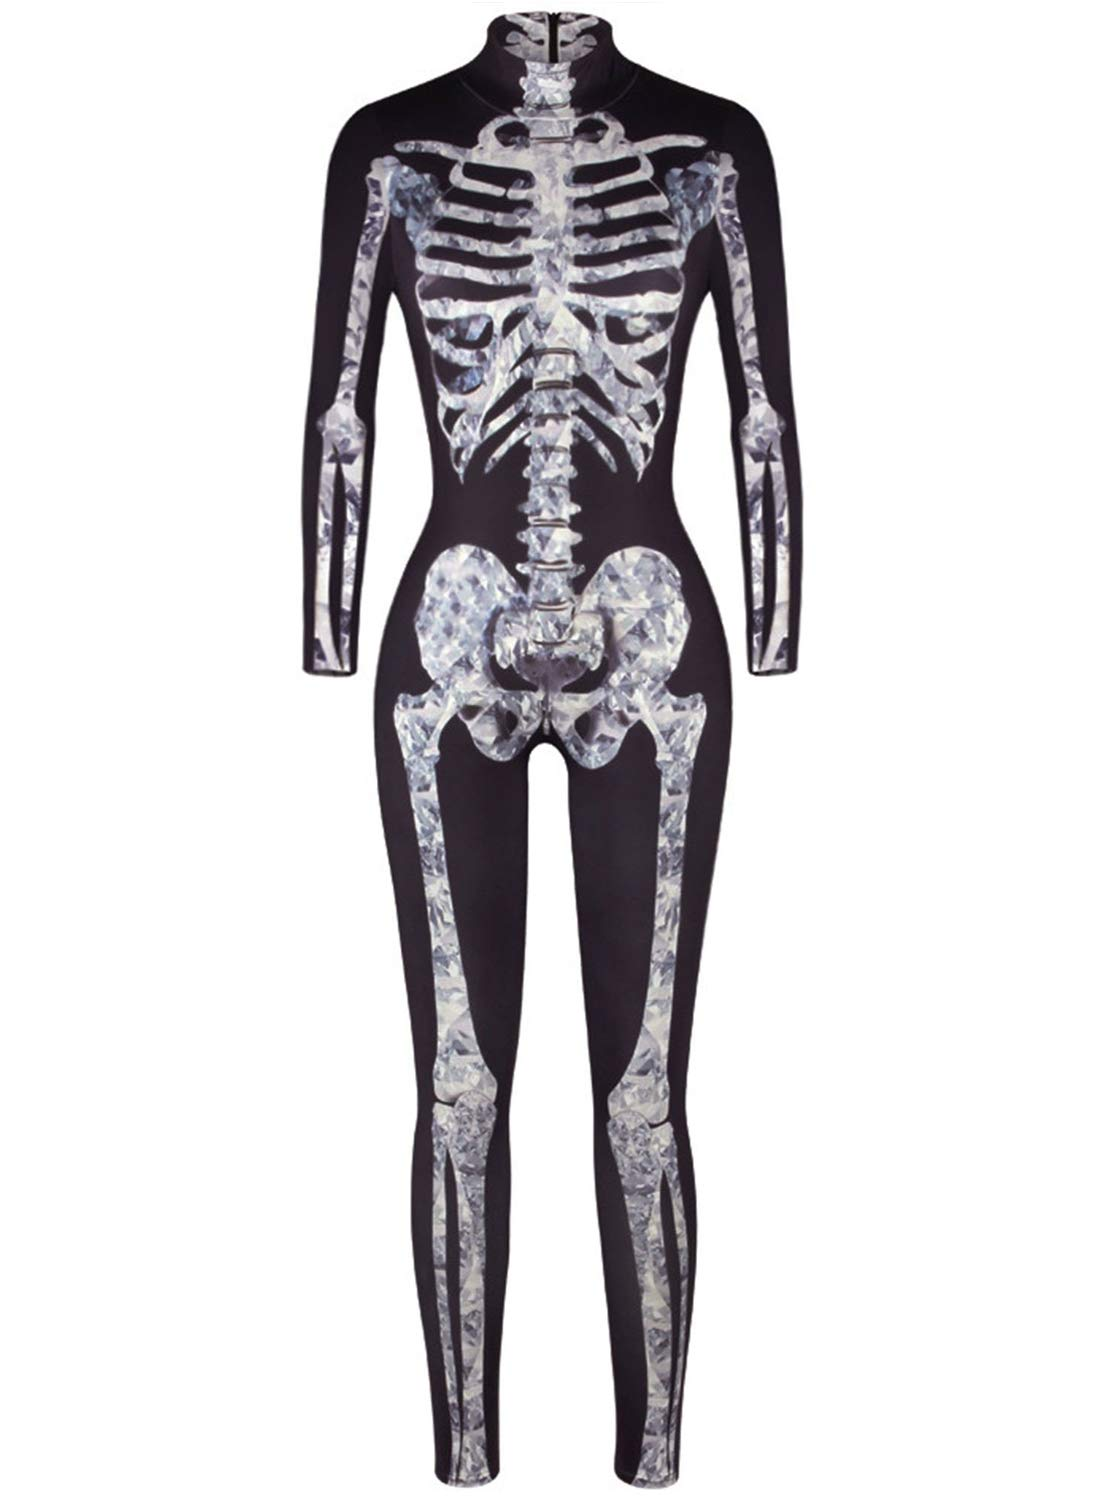 Uideazone Womens Halloween Cosplay Costume 3D Print Skull Skeleton Bodysuits Stretch Skinny Catsuit Overall Jumpsuit 61k0AvM5XML